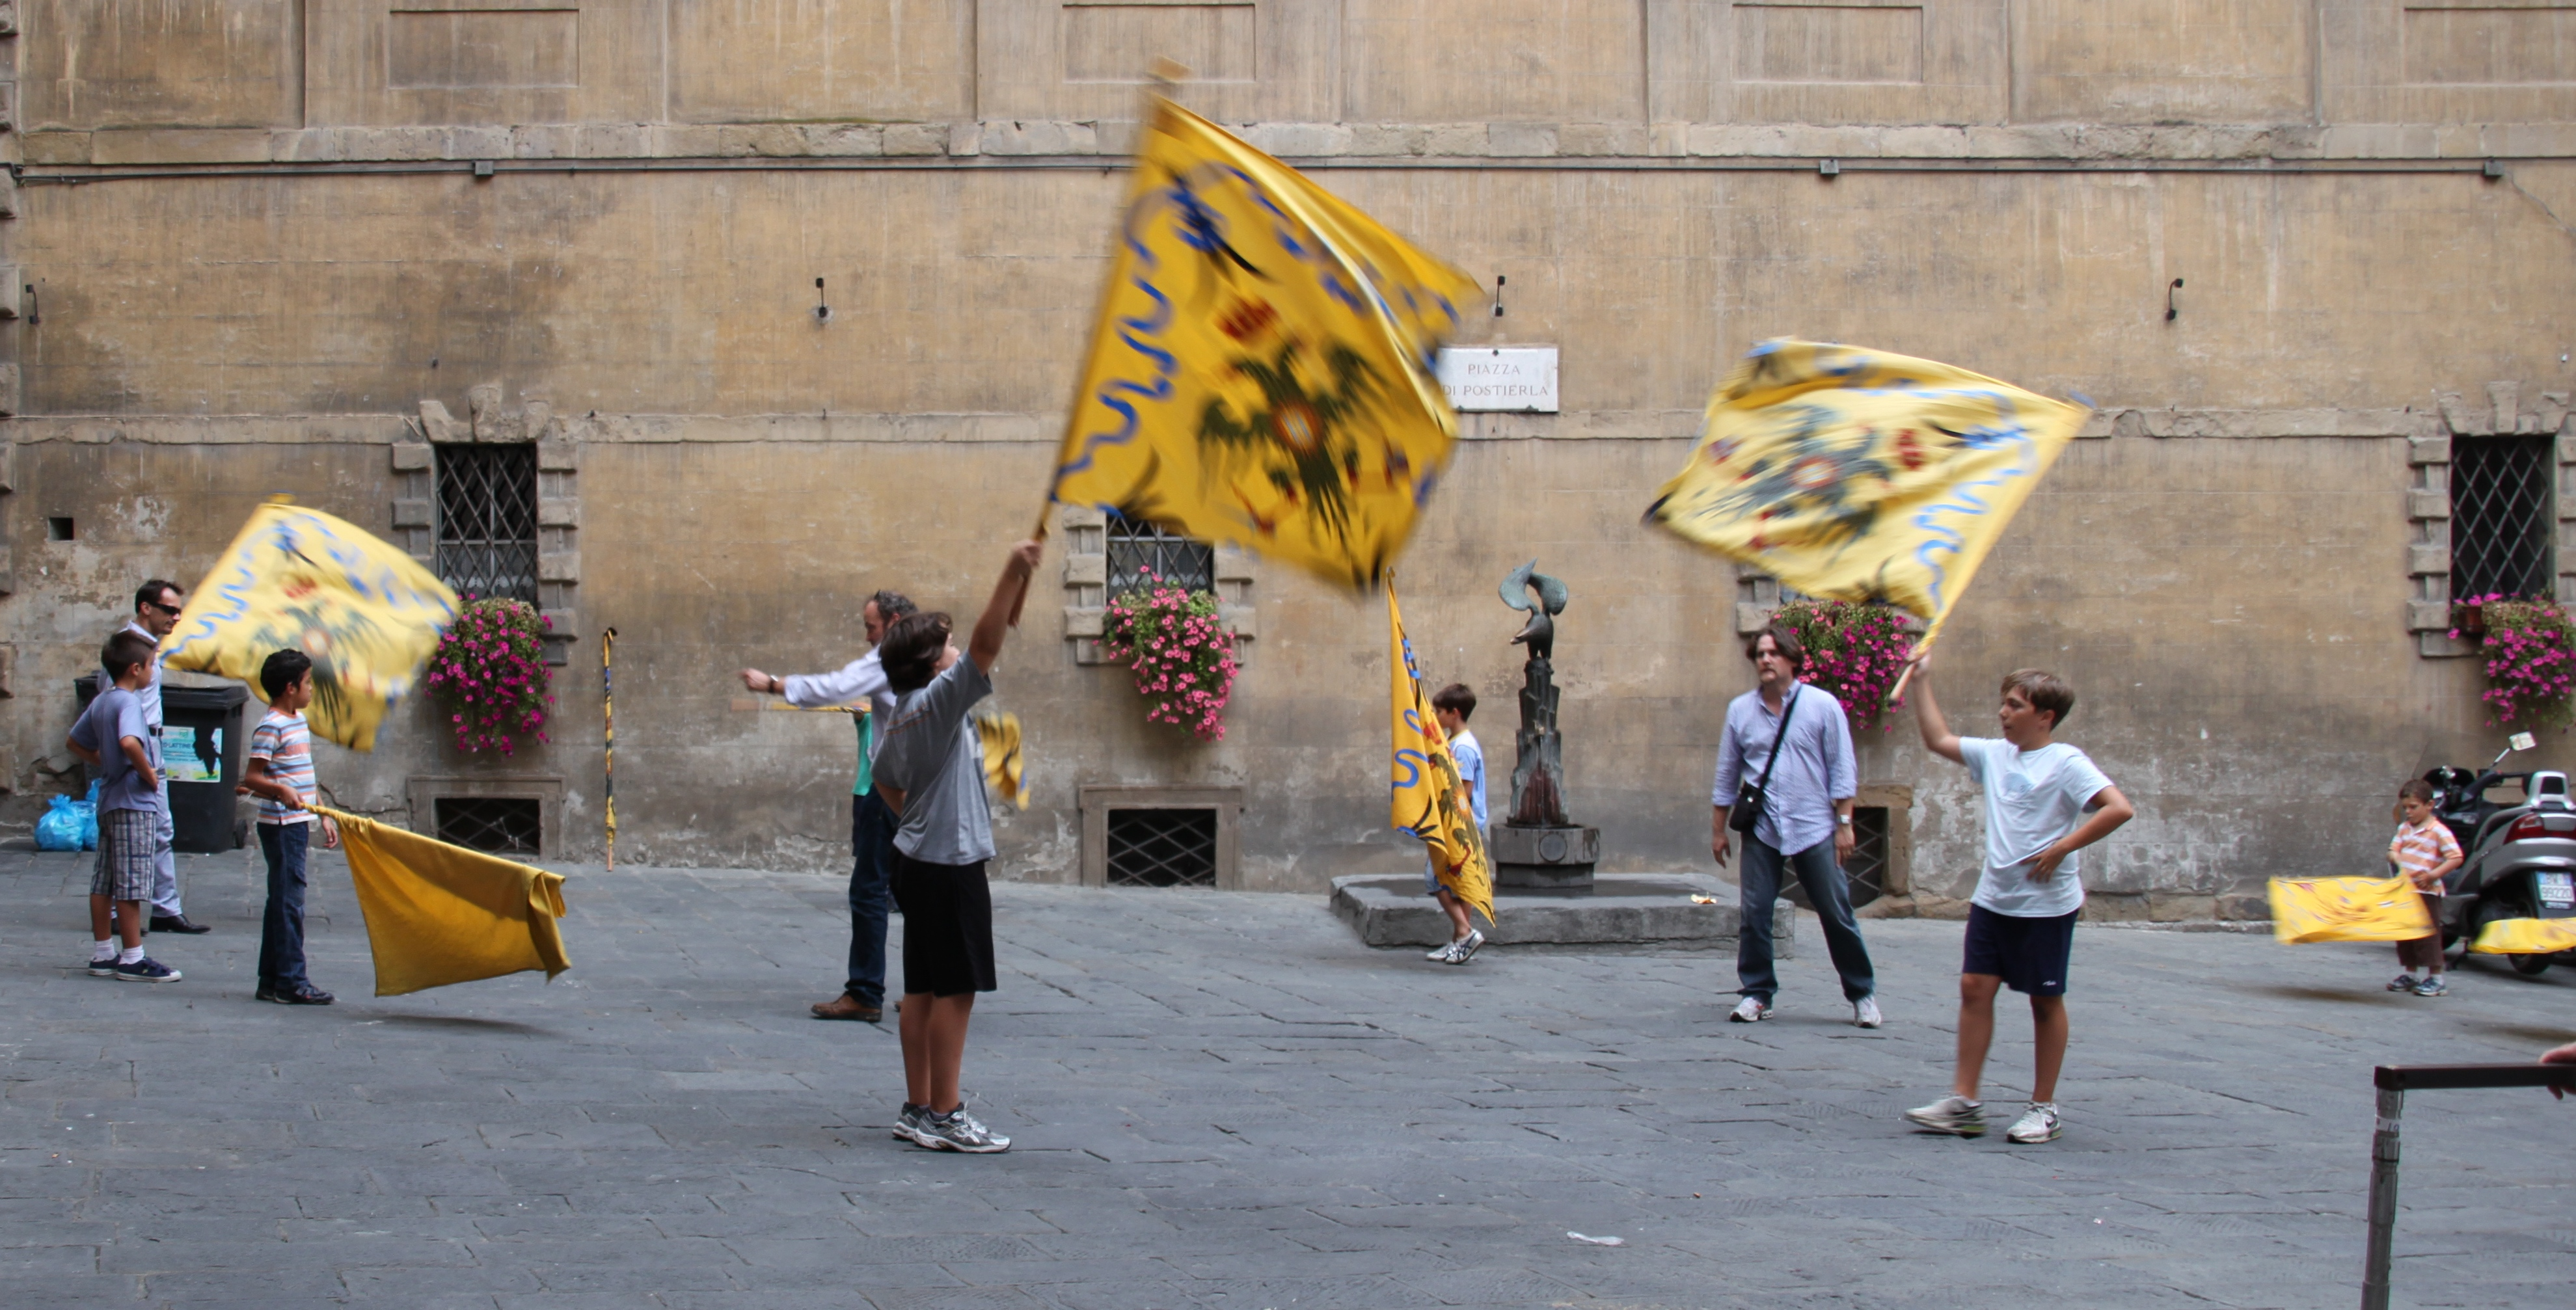 Flag bearers start at a young age in Siena, Tuscany